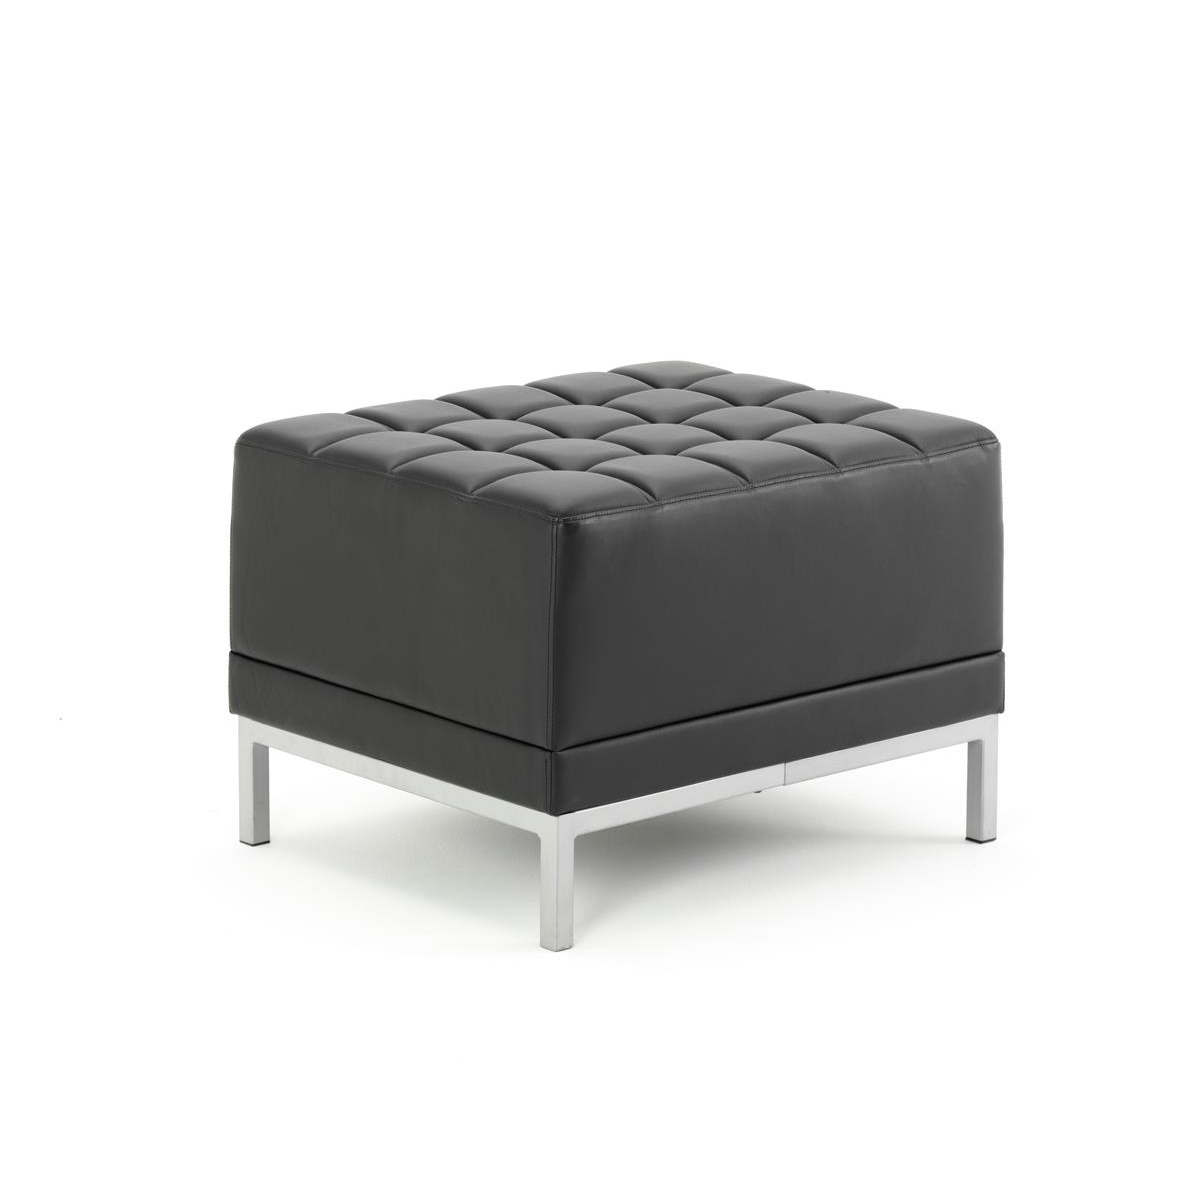 Image for #Sonix Modular Reception Cube Chair Bonded Leather 660x520x440mm Ref BR000199